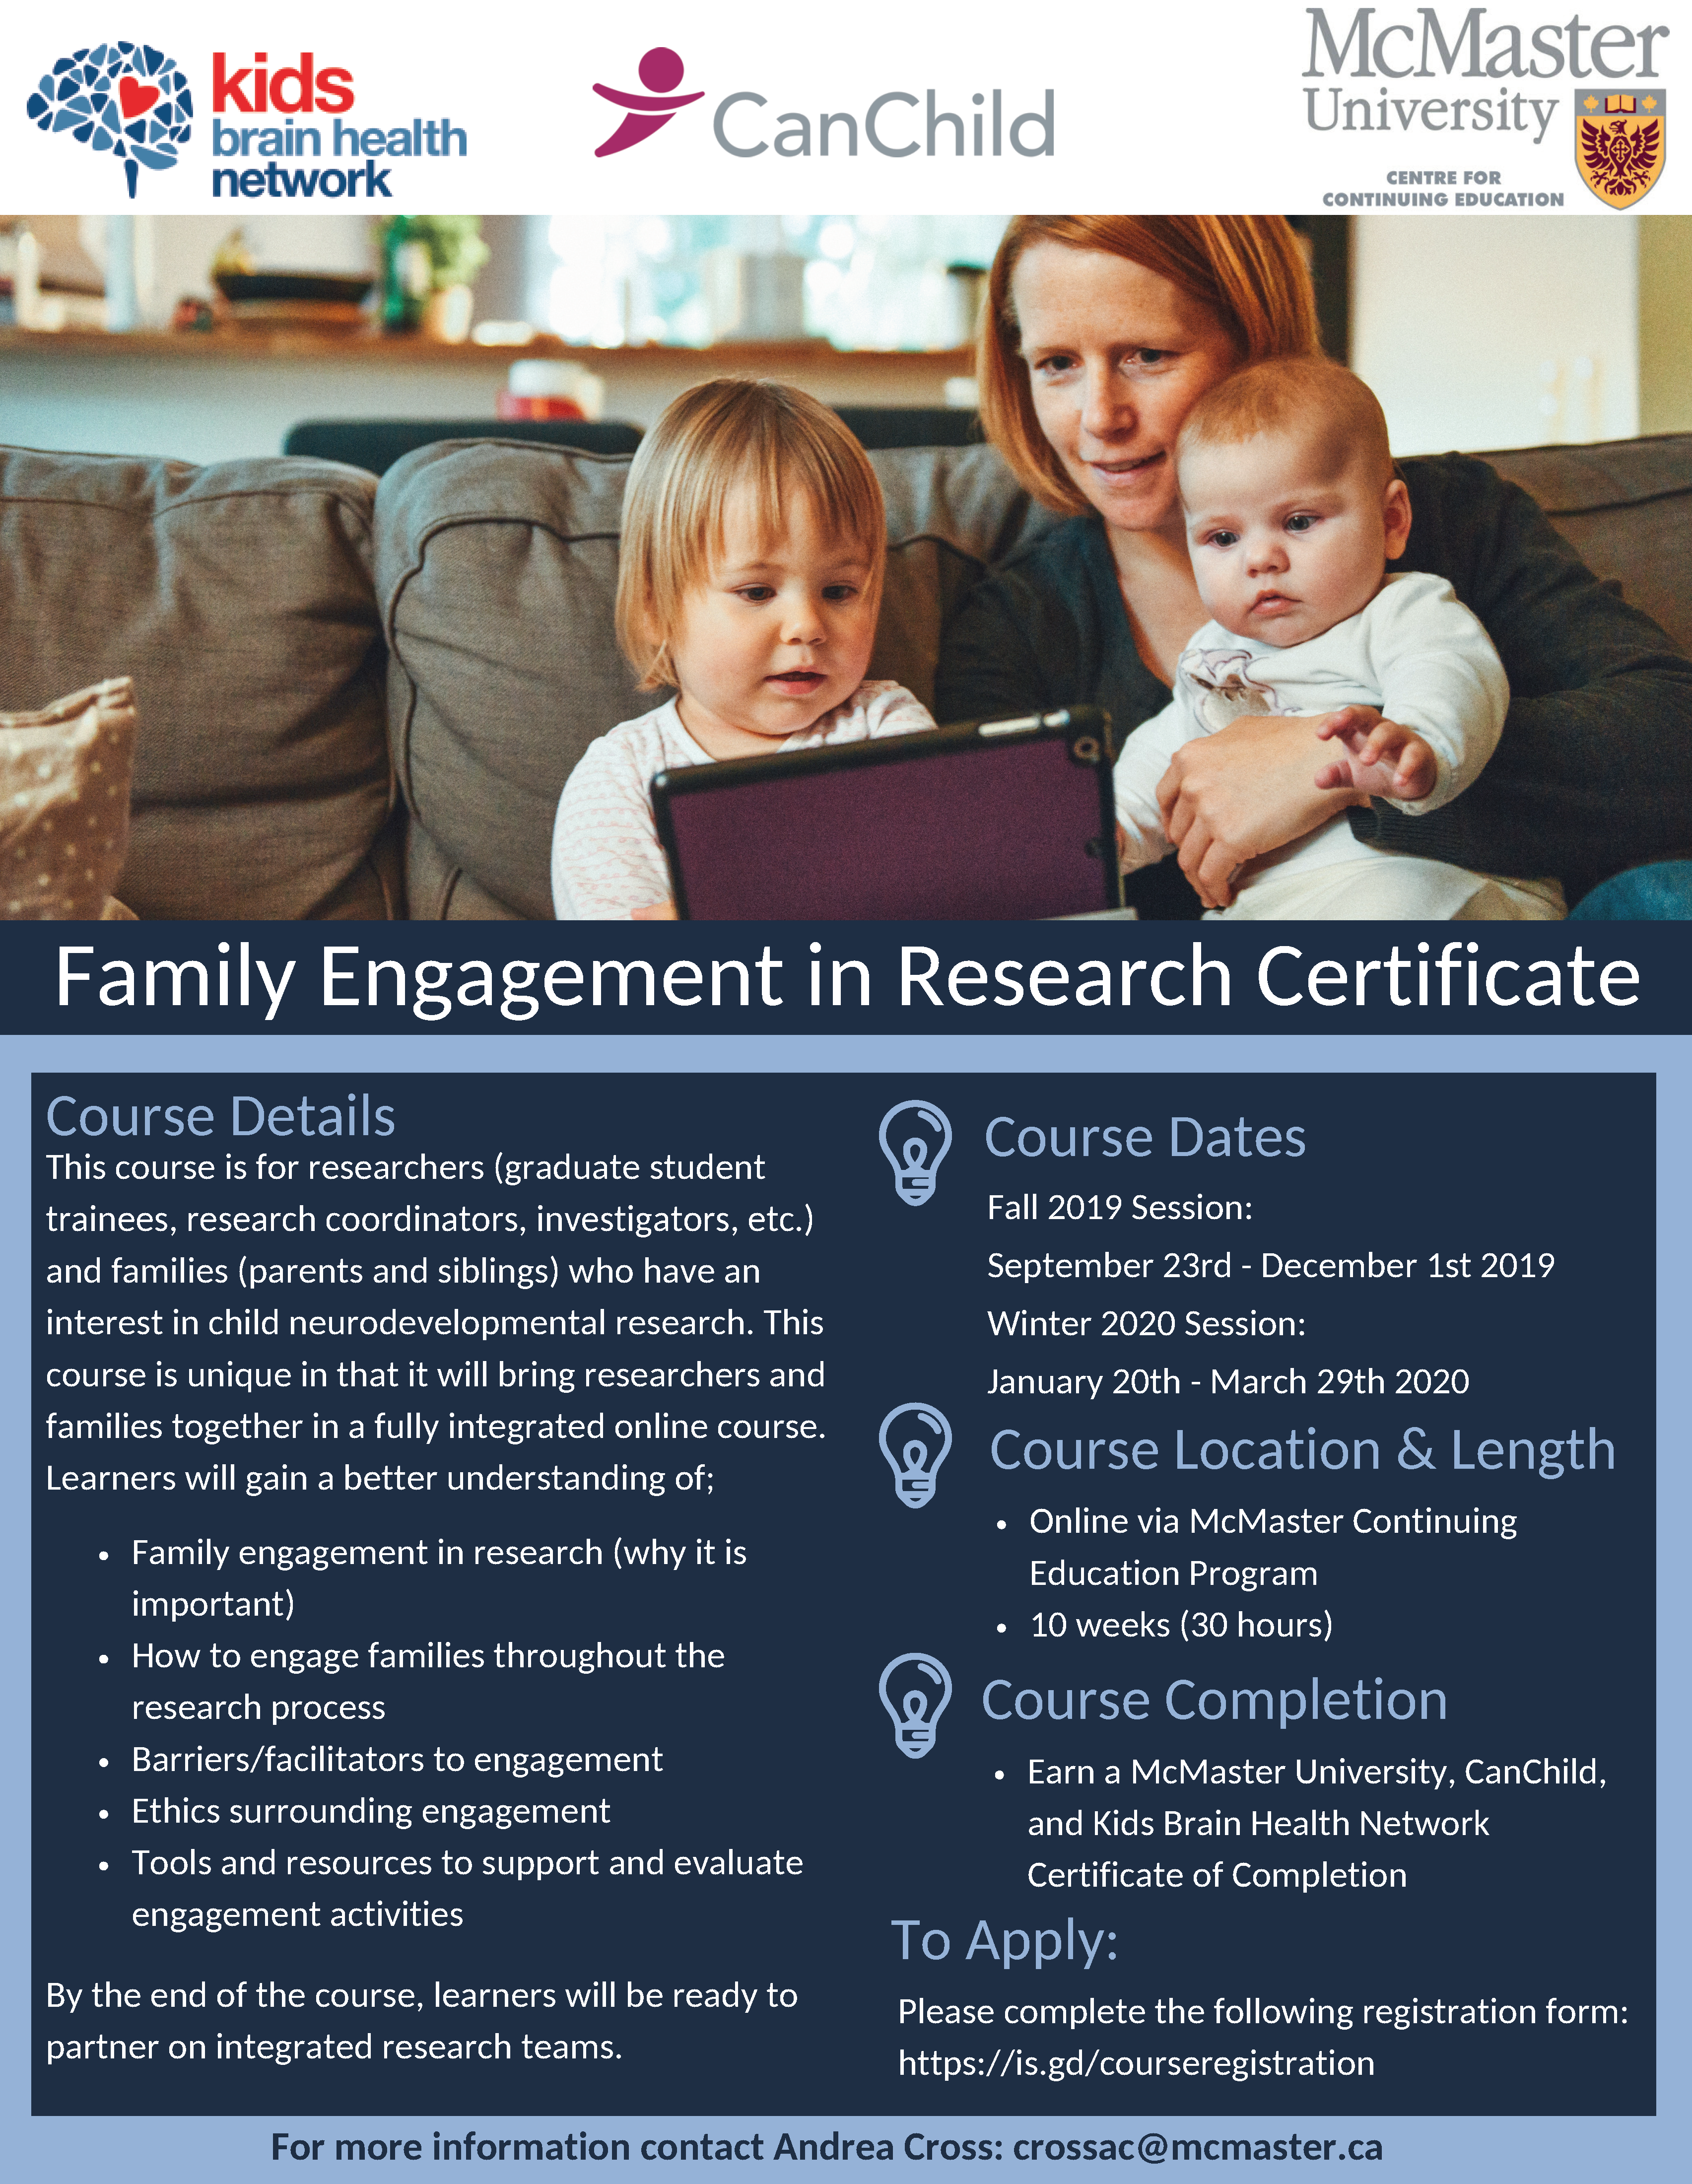 Fall 2019/Winter 2020 Family Engagement in Research Certificate Registration Now Open!